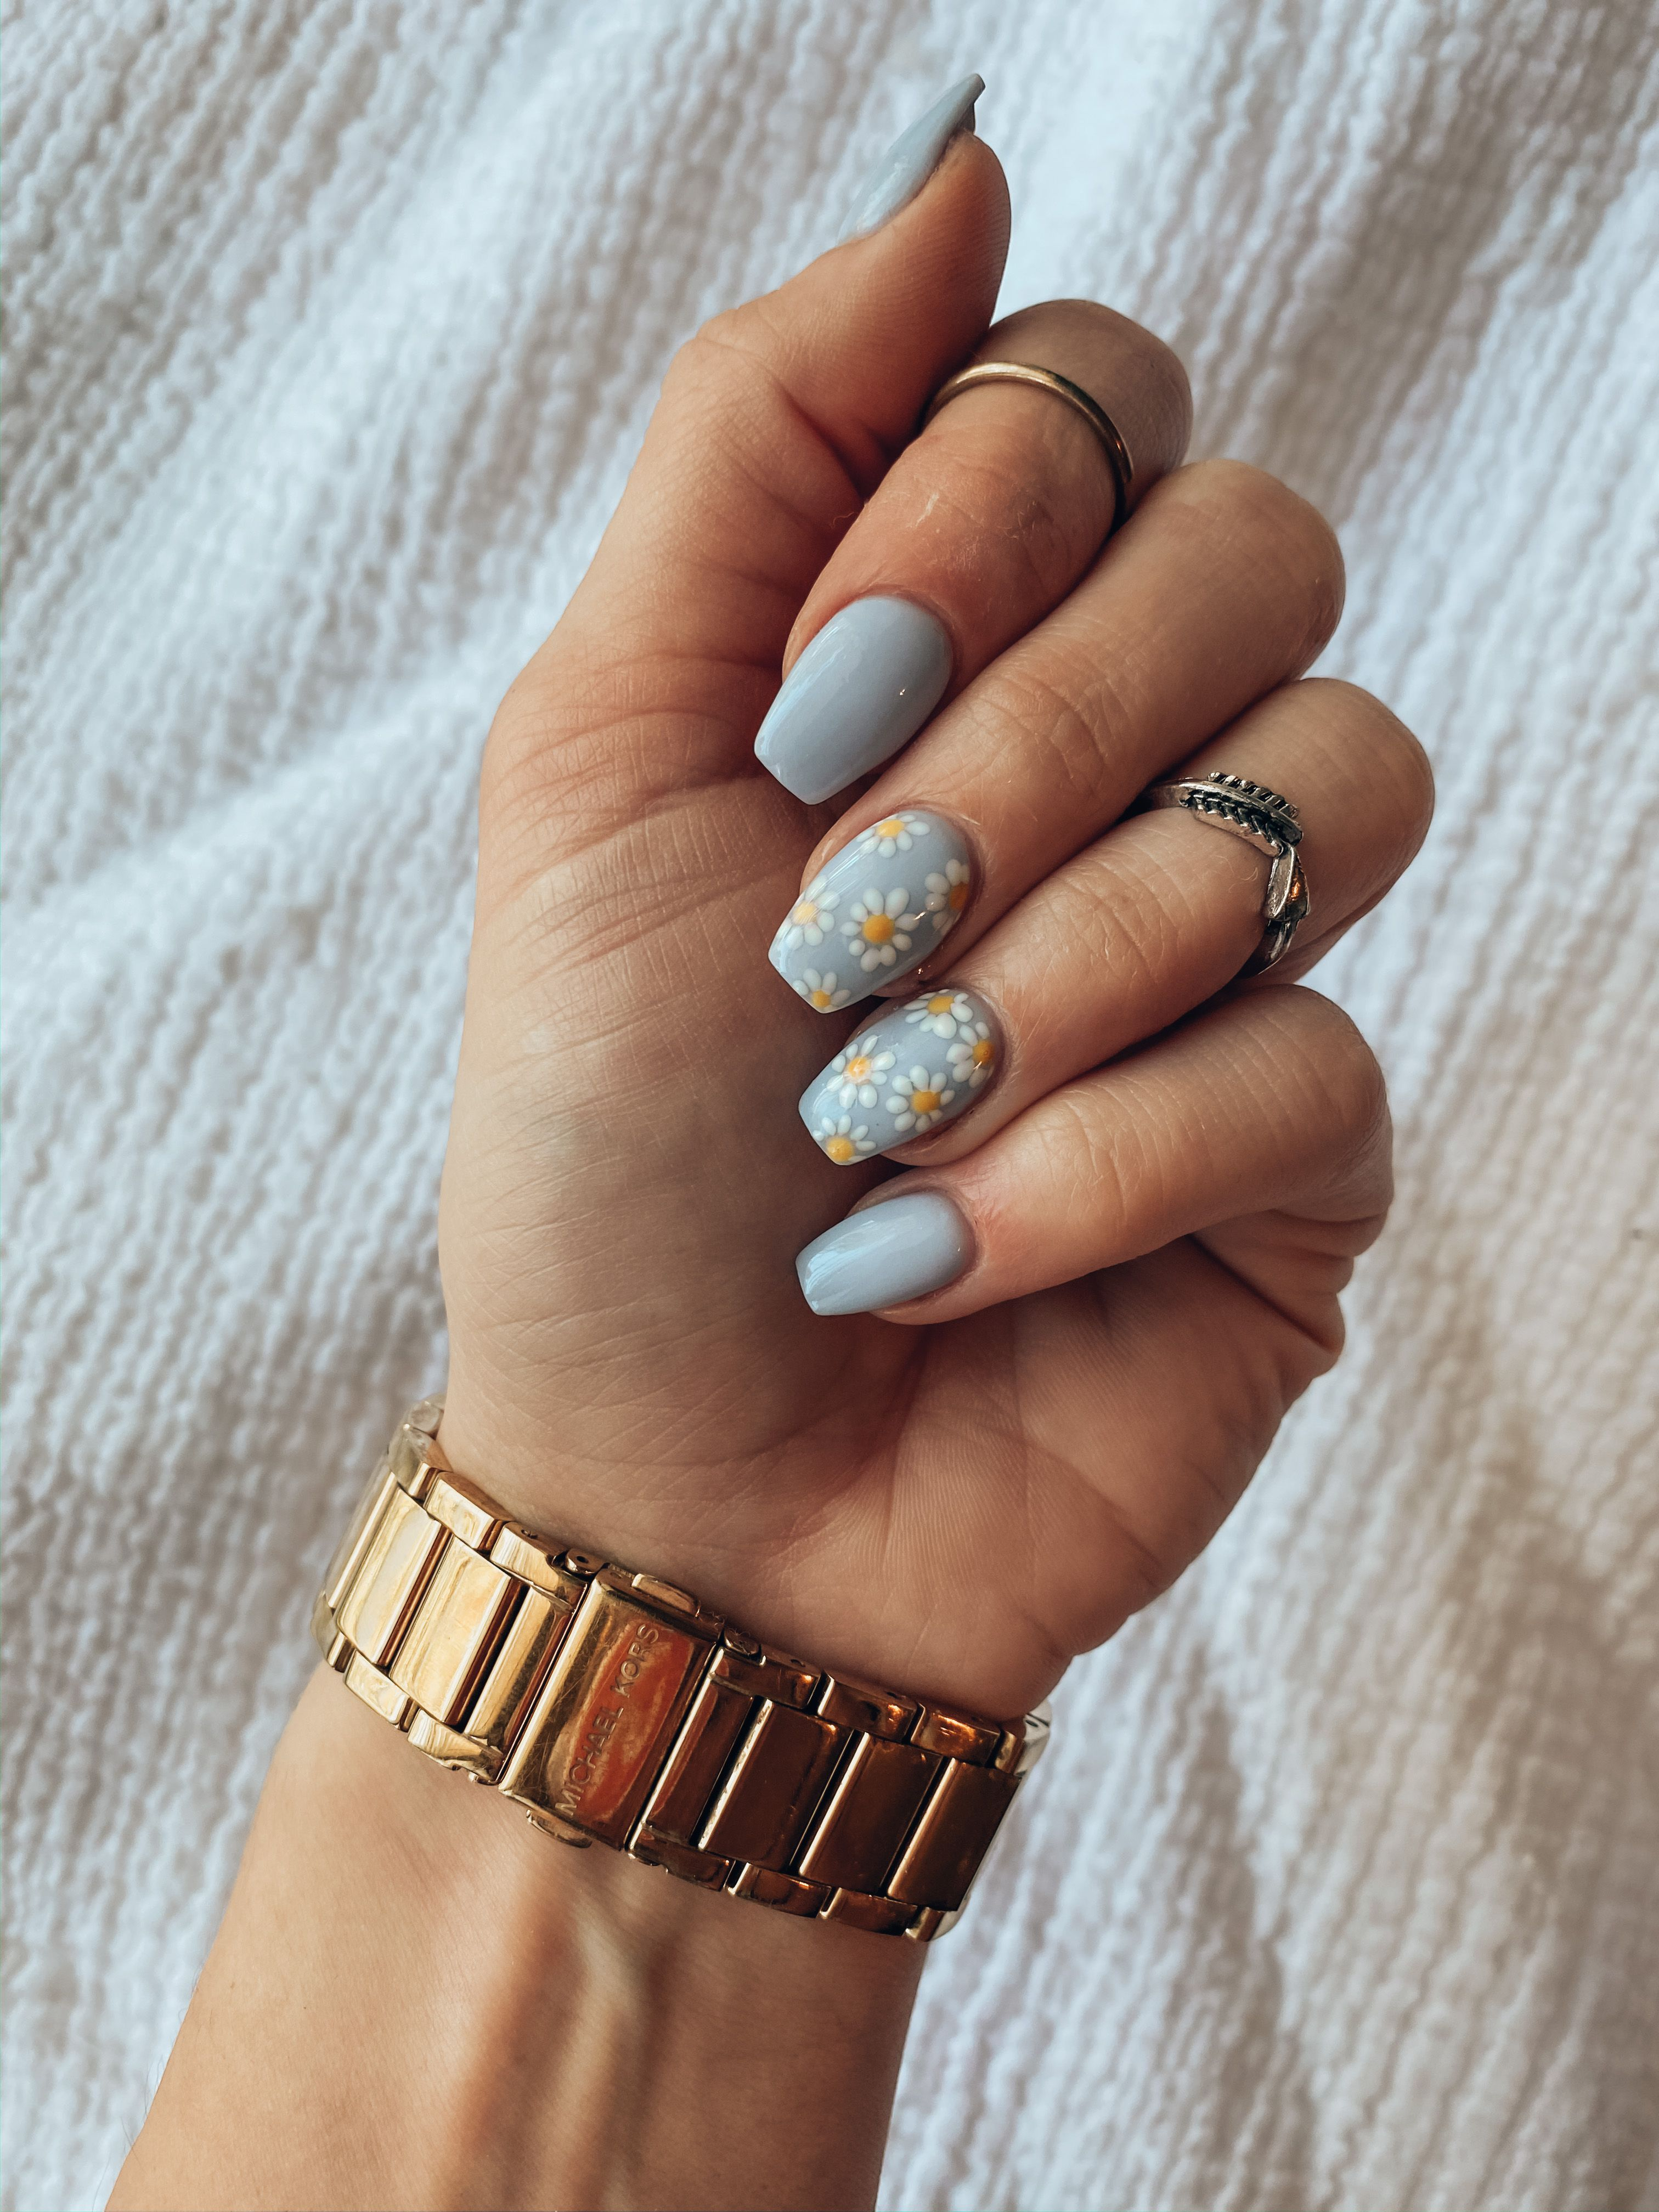 Light Blue Acrylic Nails With Daisy Design In 2020 Blue Acrylic Nails Baby Blue Nails Simple Acrylic Nails